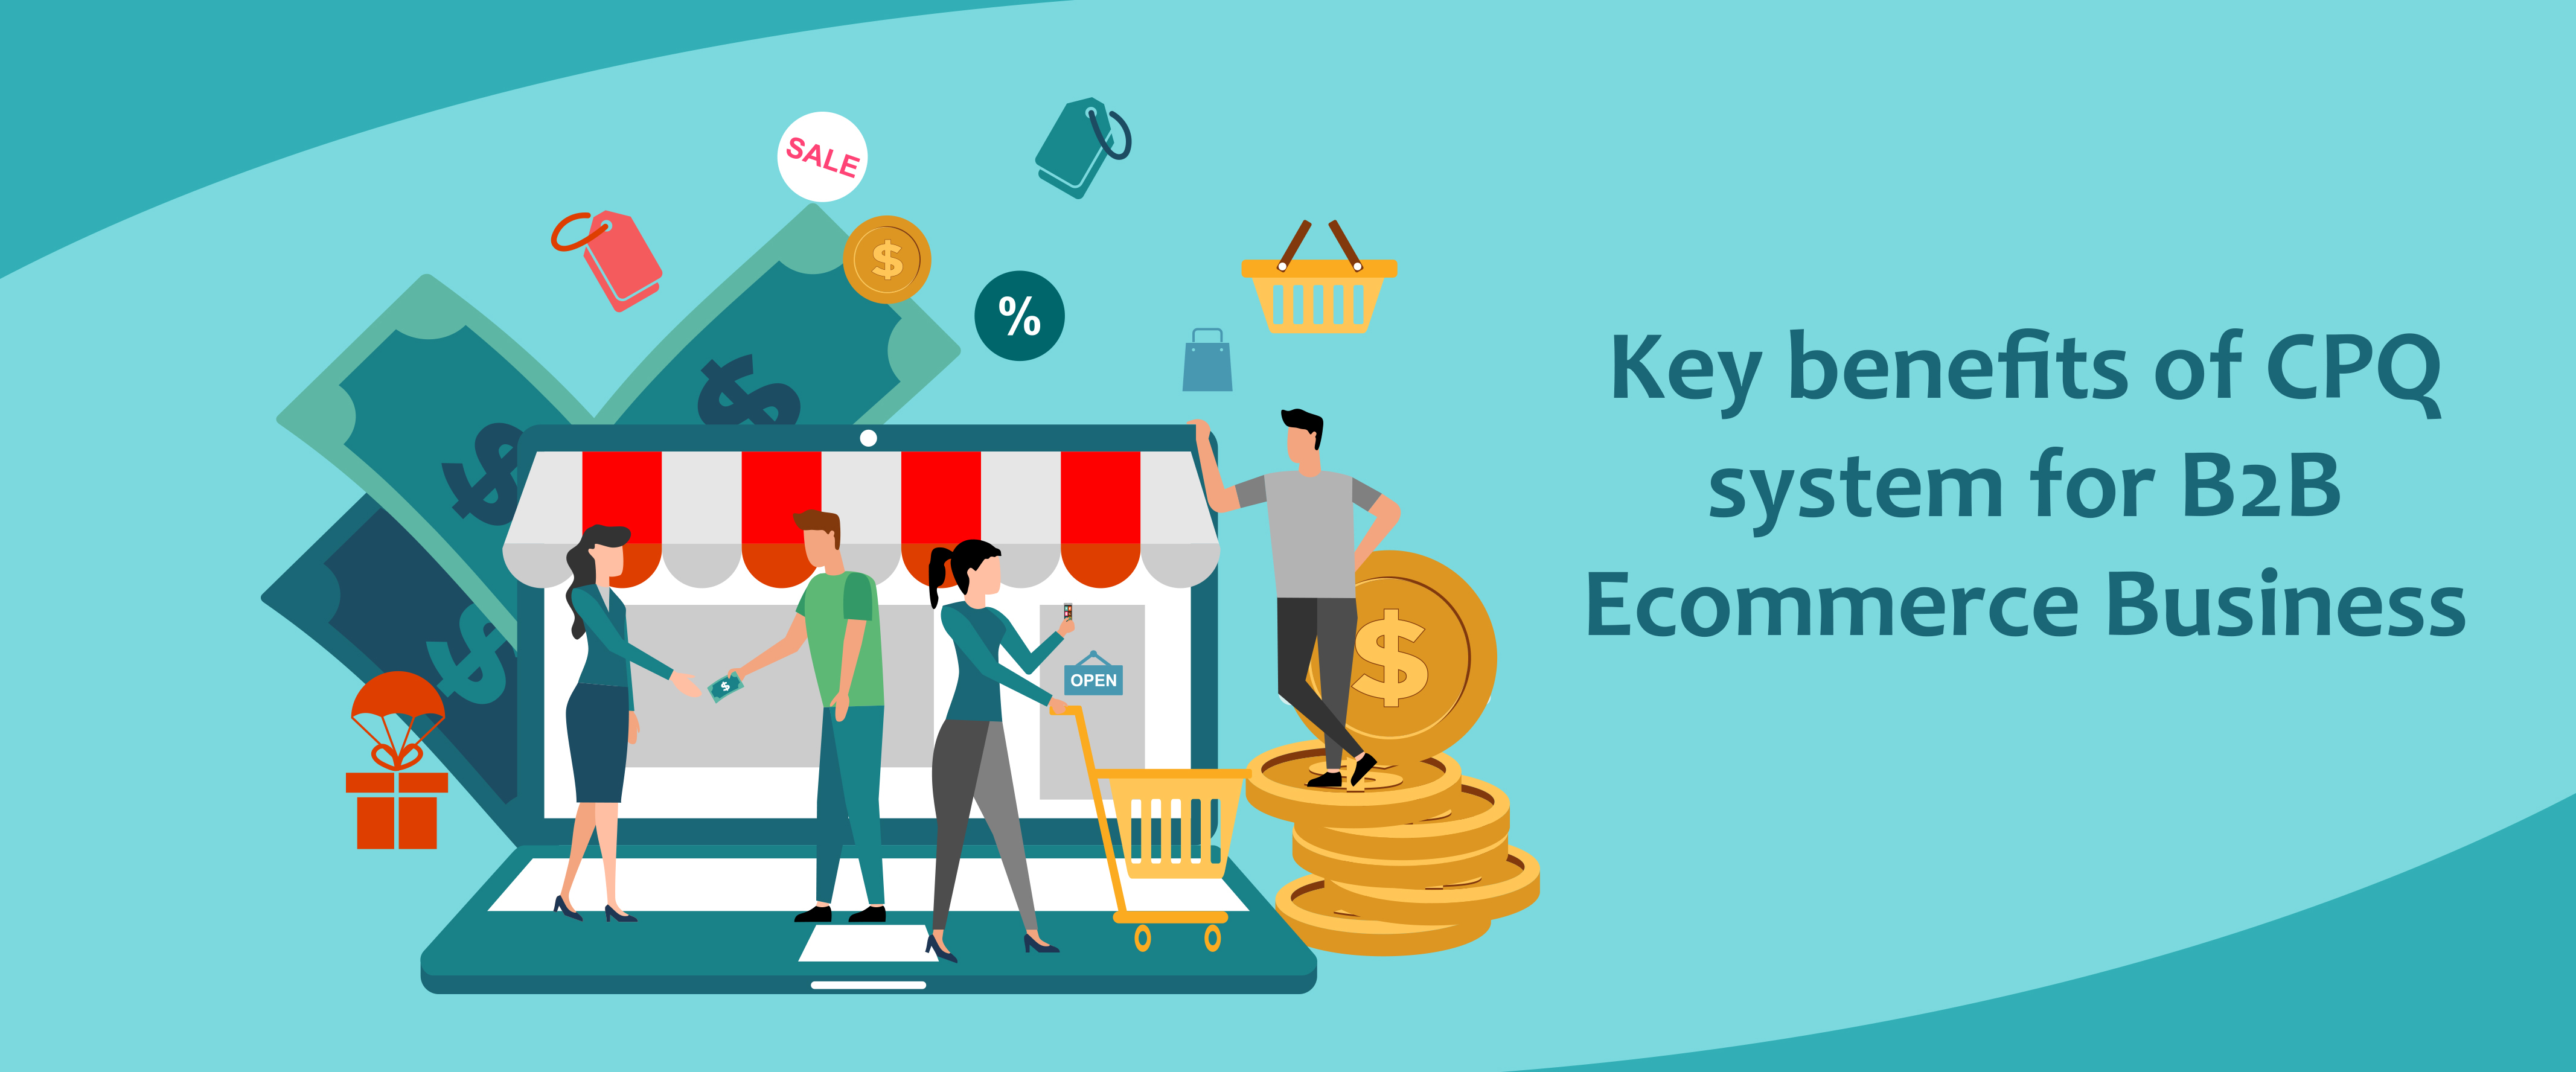 Key benefits of CPQ system for B2B Ecommerce Business